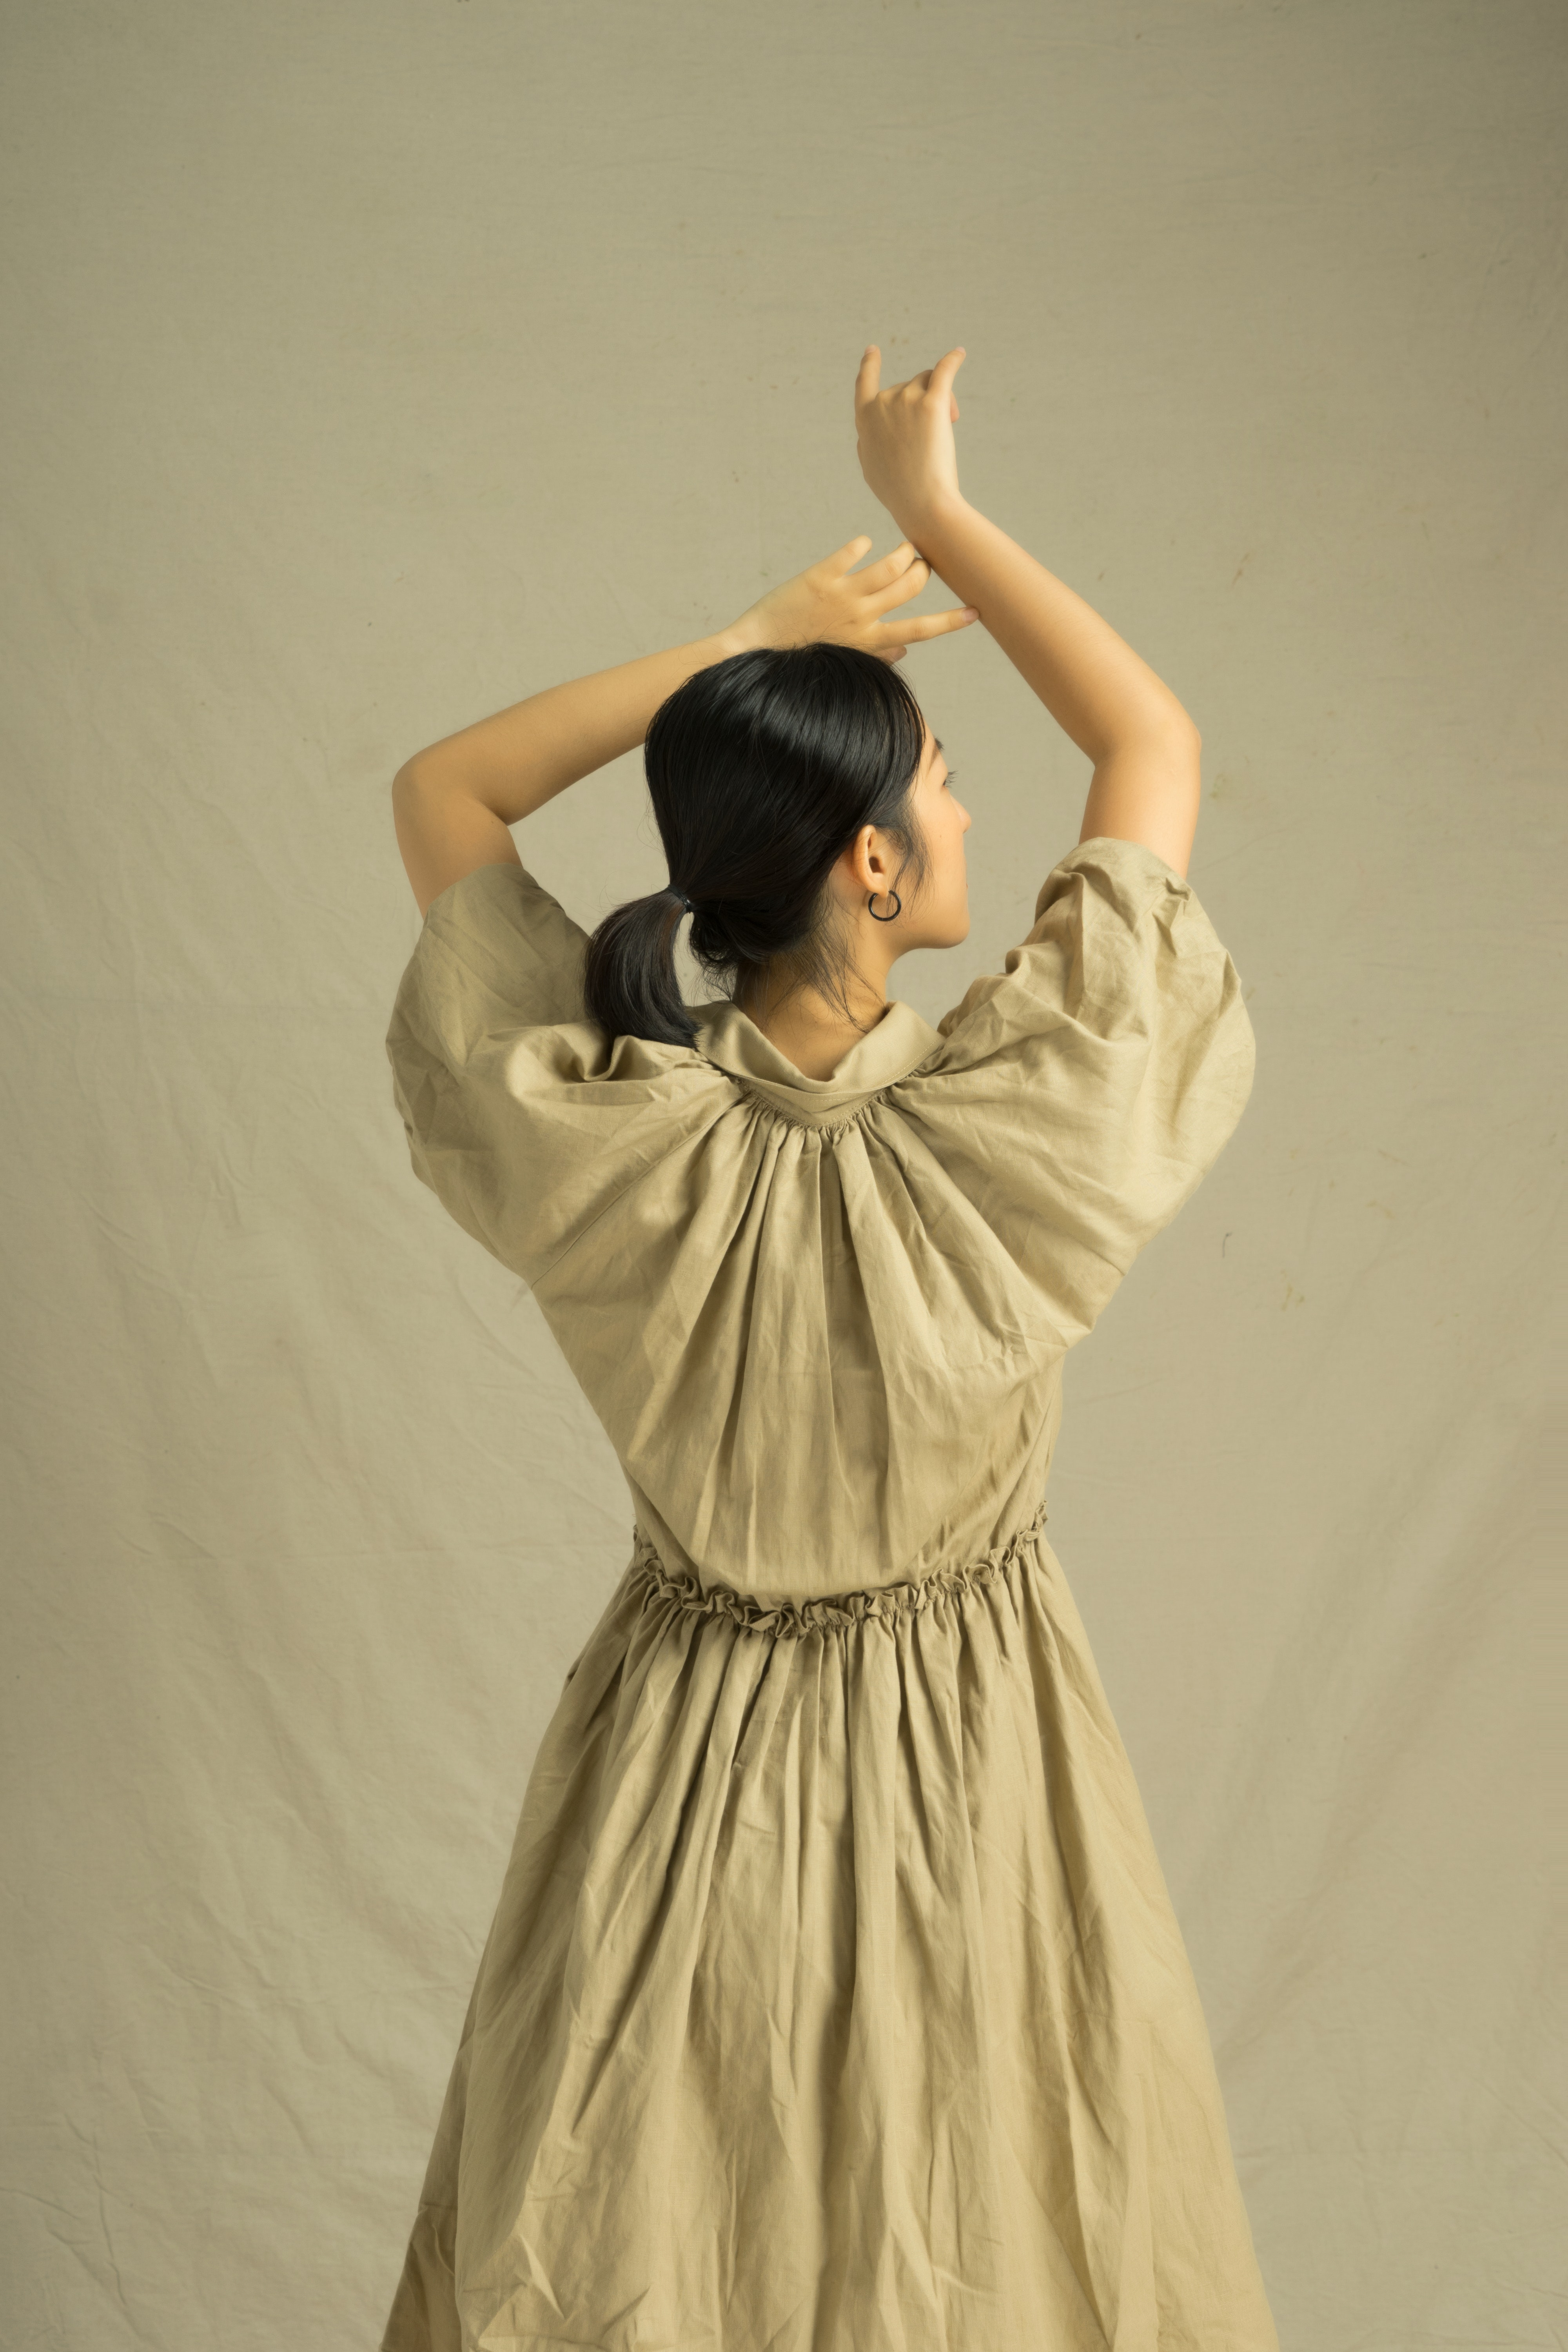 back-view-of-a-woman-in-brown-dress-3866555